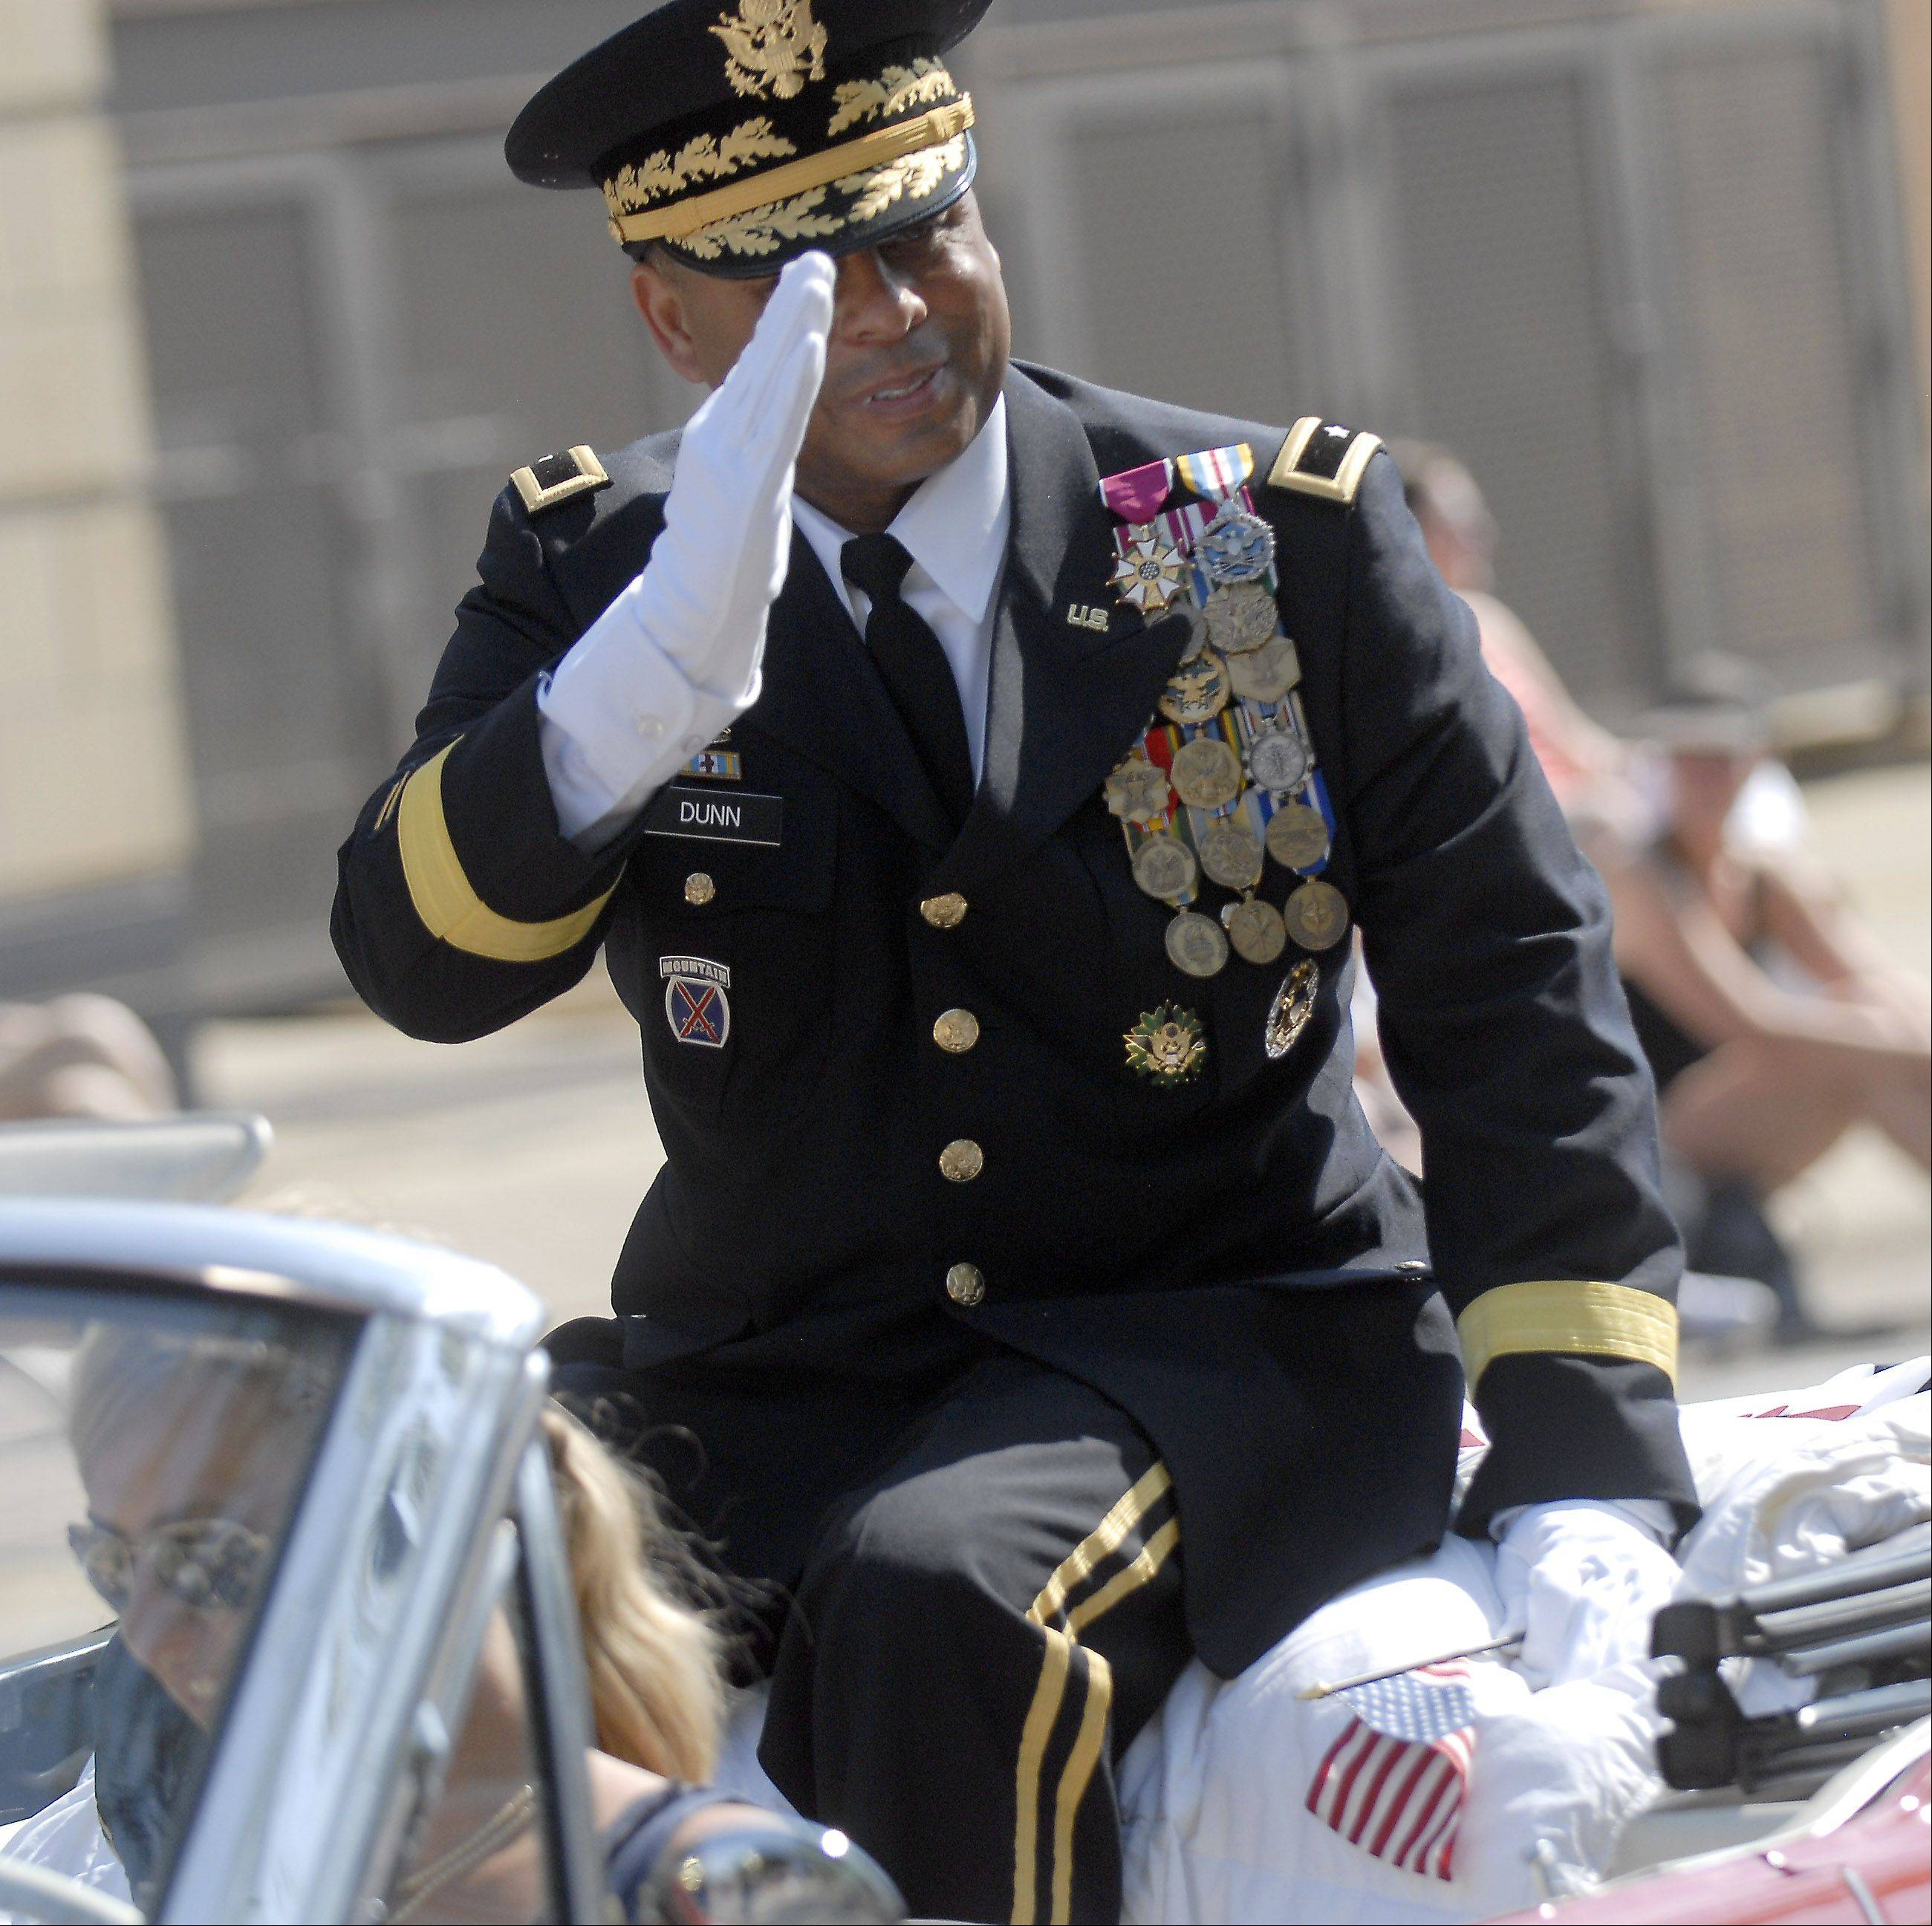 Brigadier General Gracus K. Dunn, Commanding General of the 85th Support Command, Arlington Heights salutes parade goers at the Memorial Day parade in Monday in Arlington Heights.